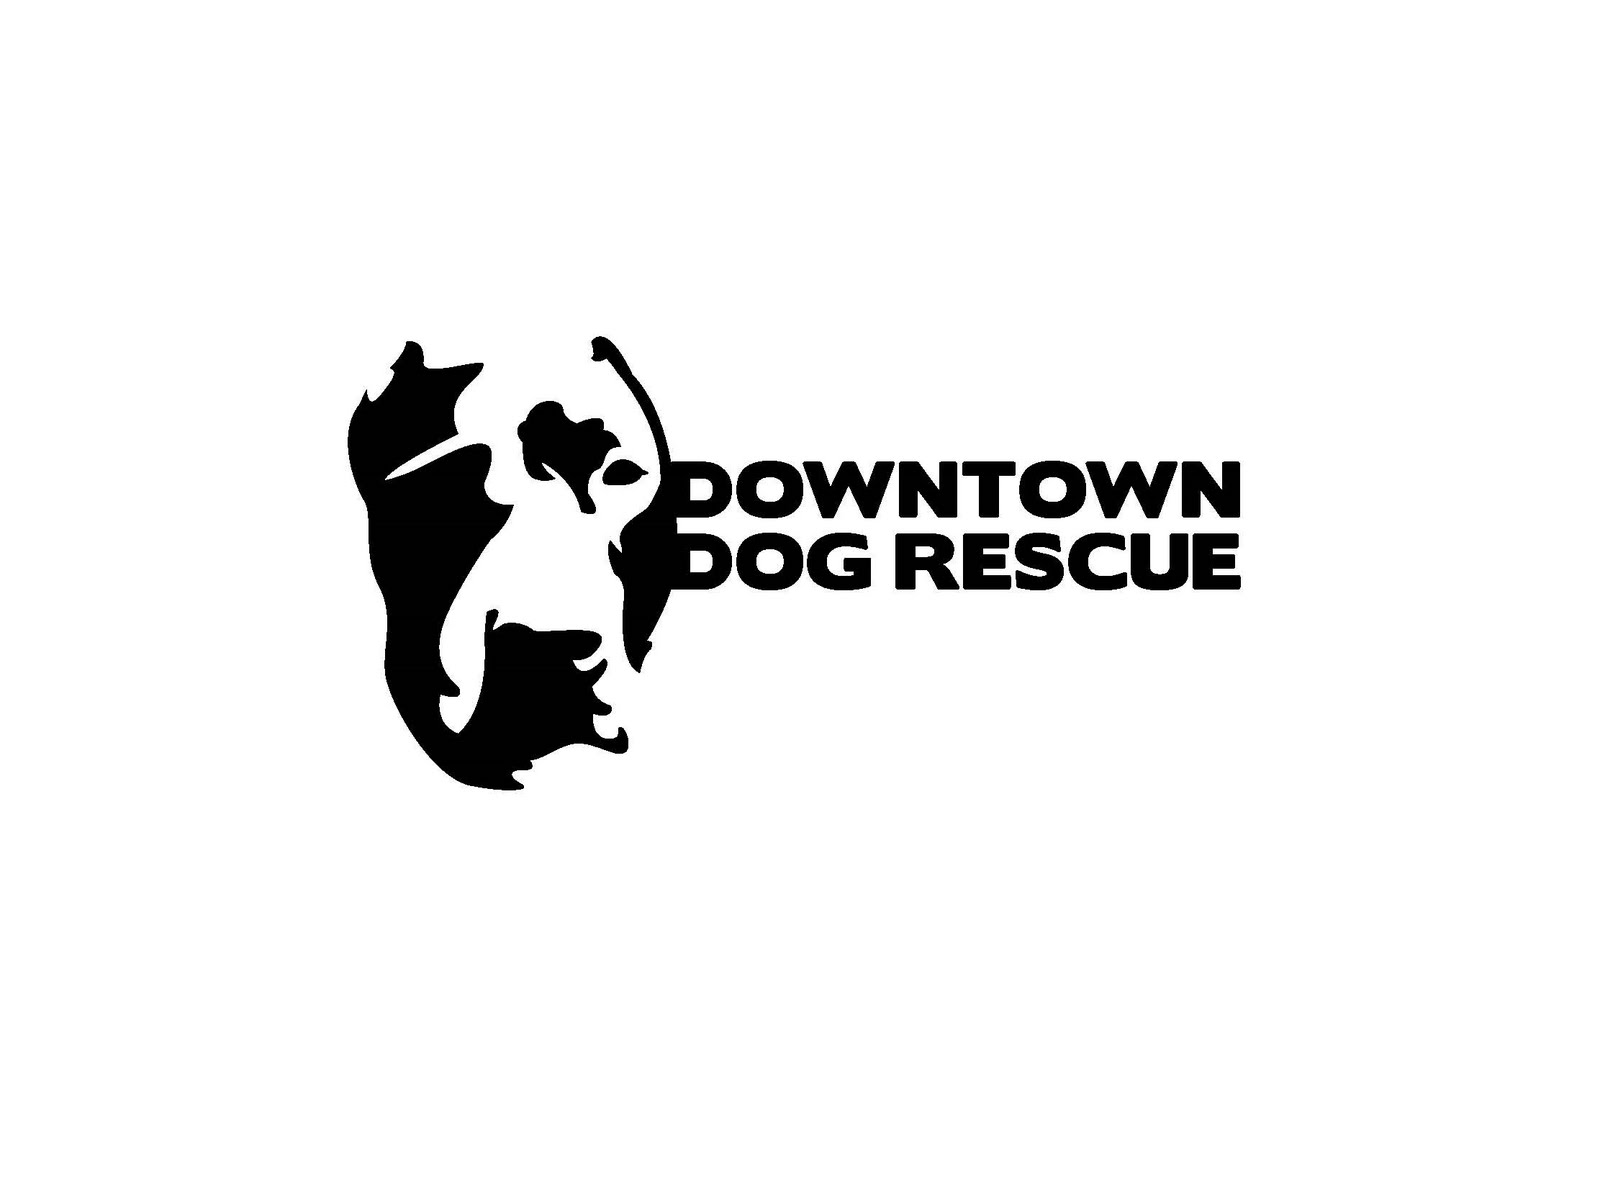 Ddr Programs Cgc Testing Downtown Dog Rescue